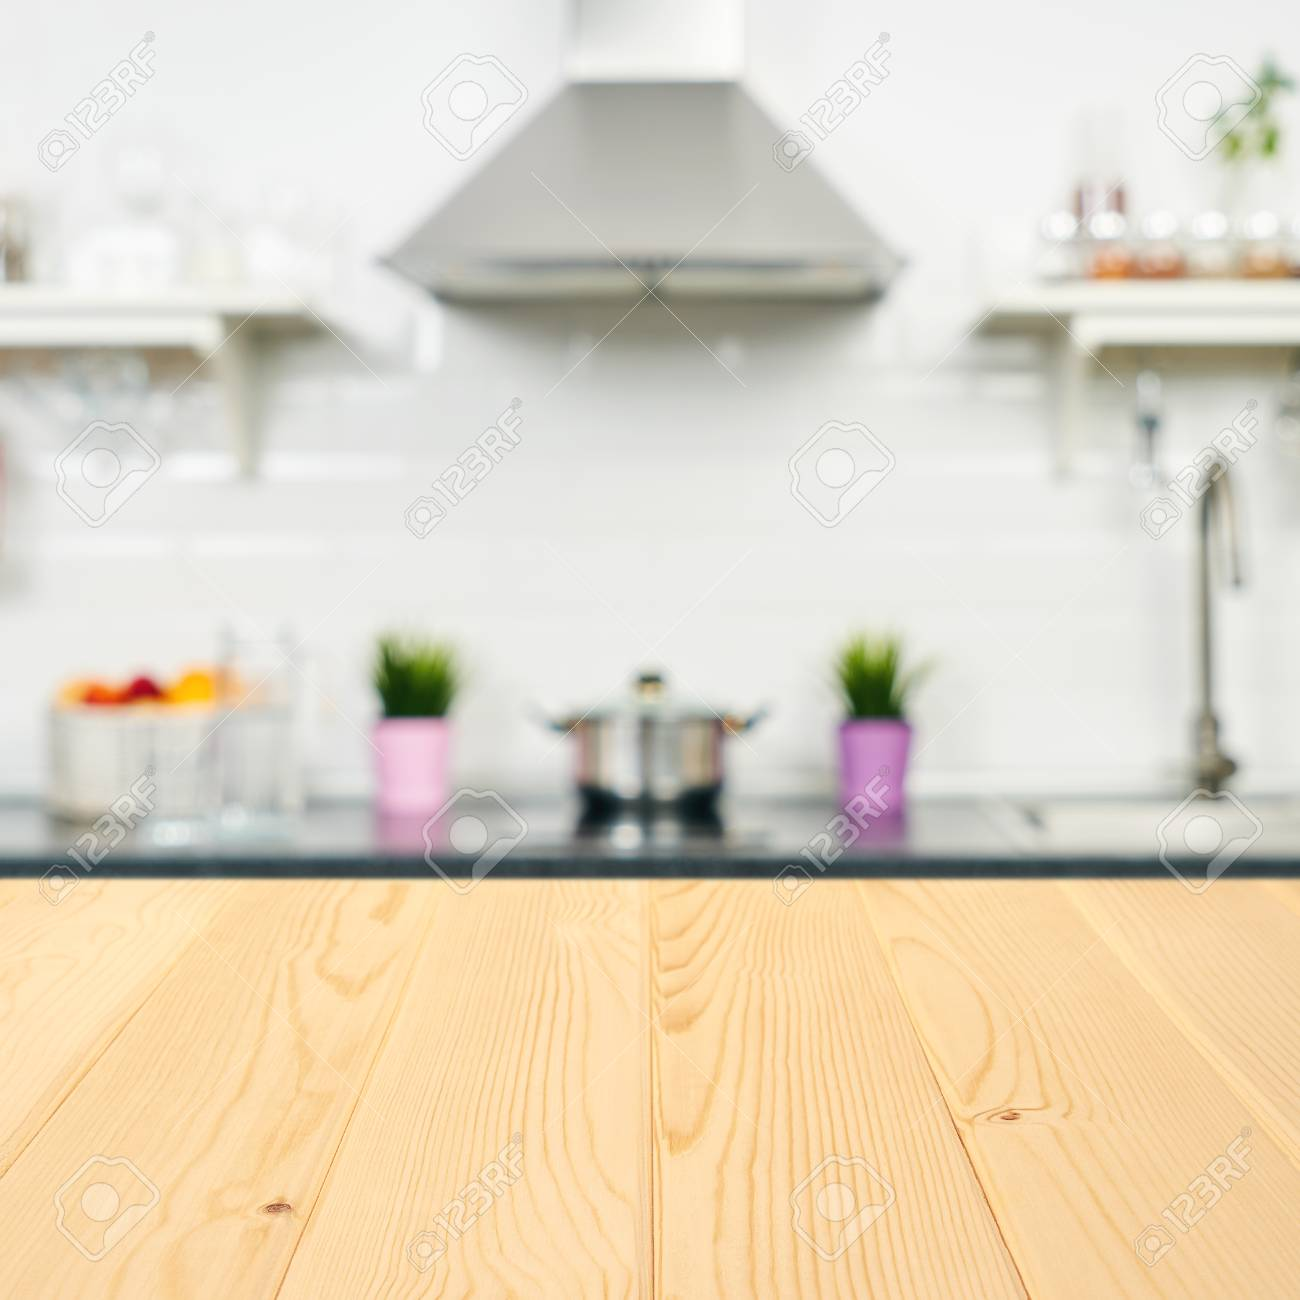 A wooden table top of the kitchen table on a blurry background..